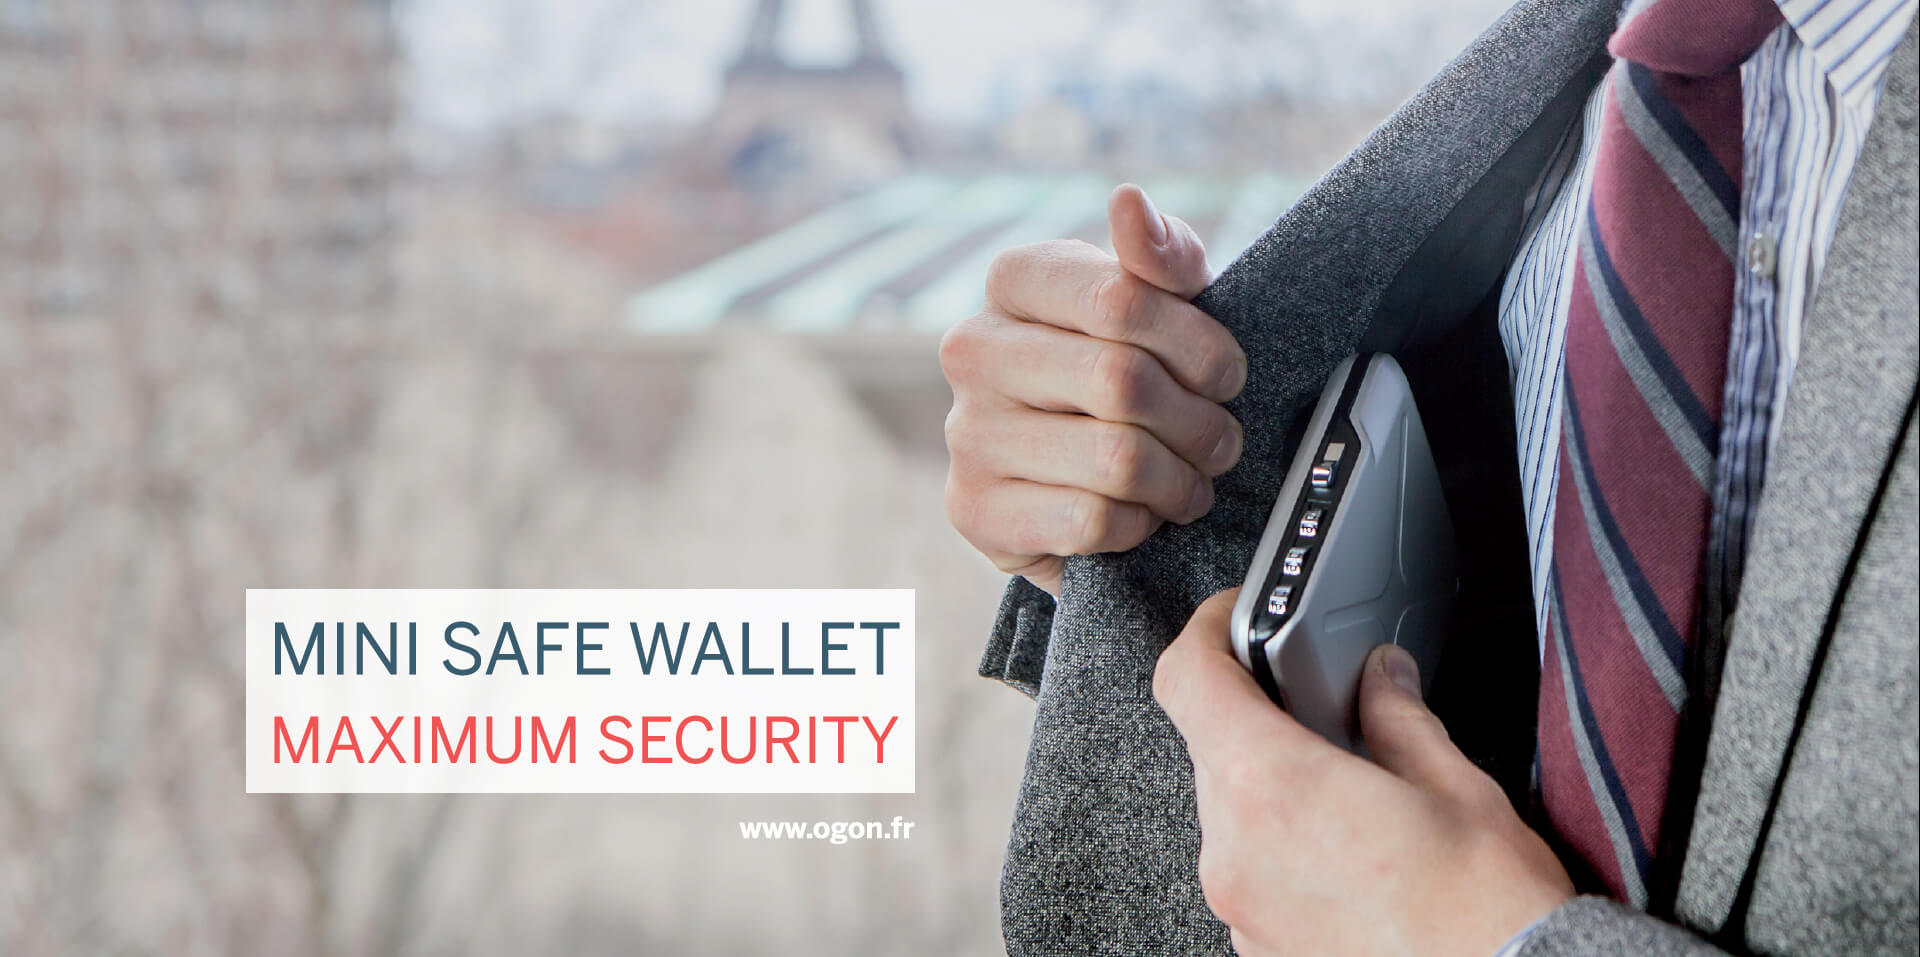 Mini Safe Wallet Maximum Security